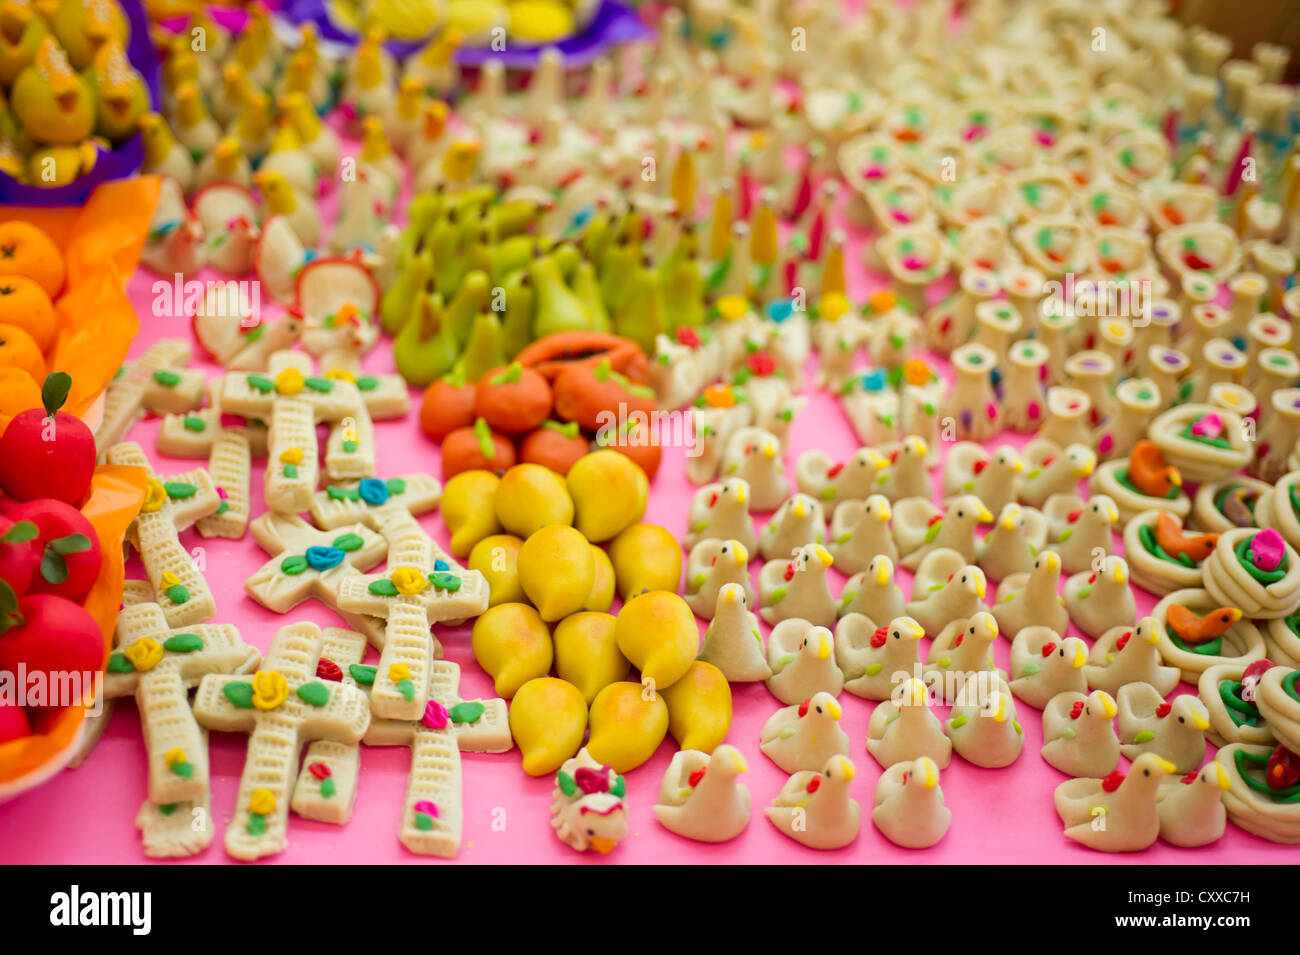 Mexican Candies Stock Photos & Mexican Candies Stock Images